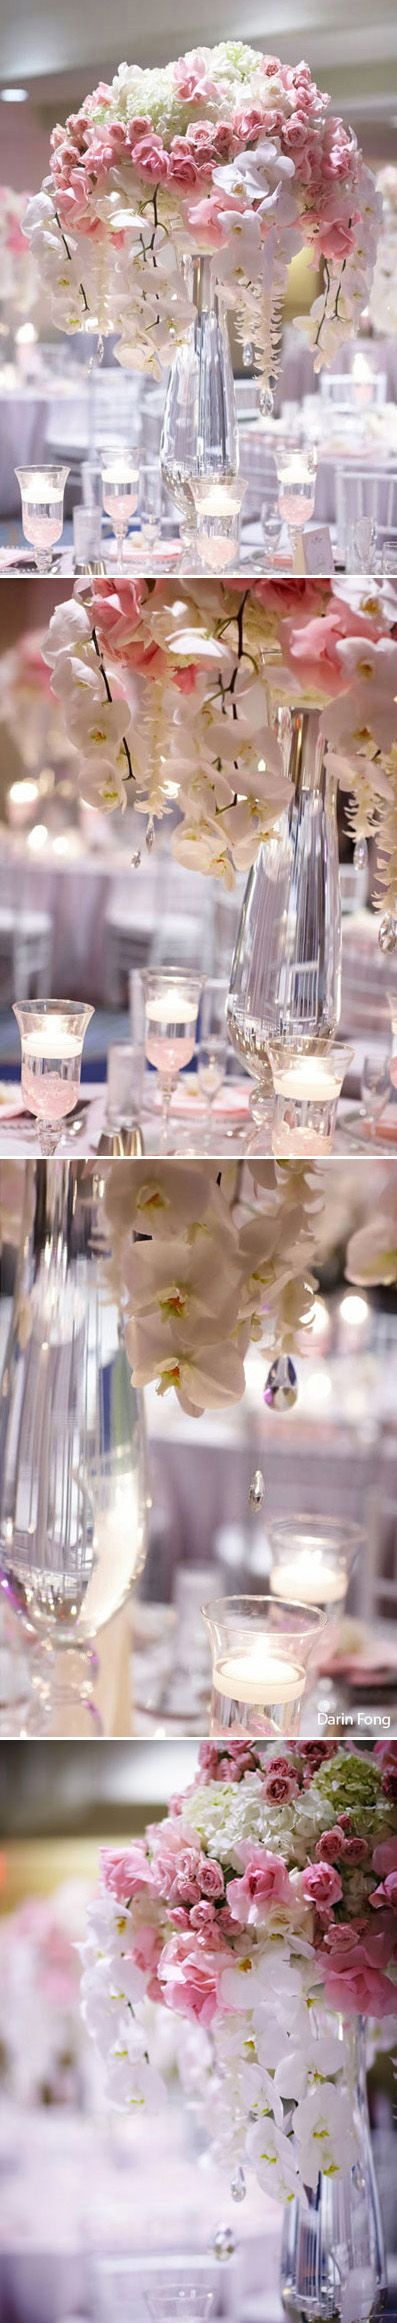 Tablescape Centerpiece ● Pink